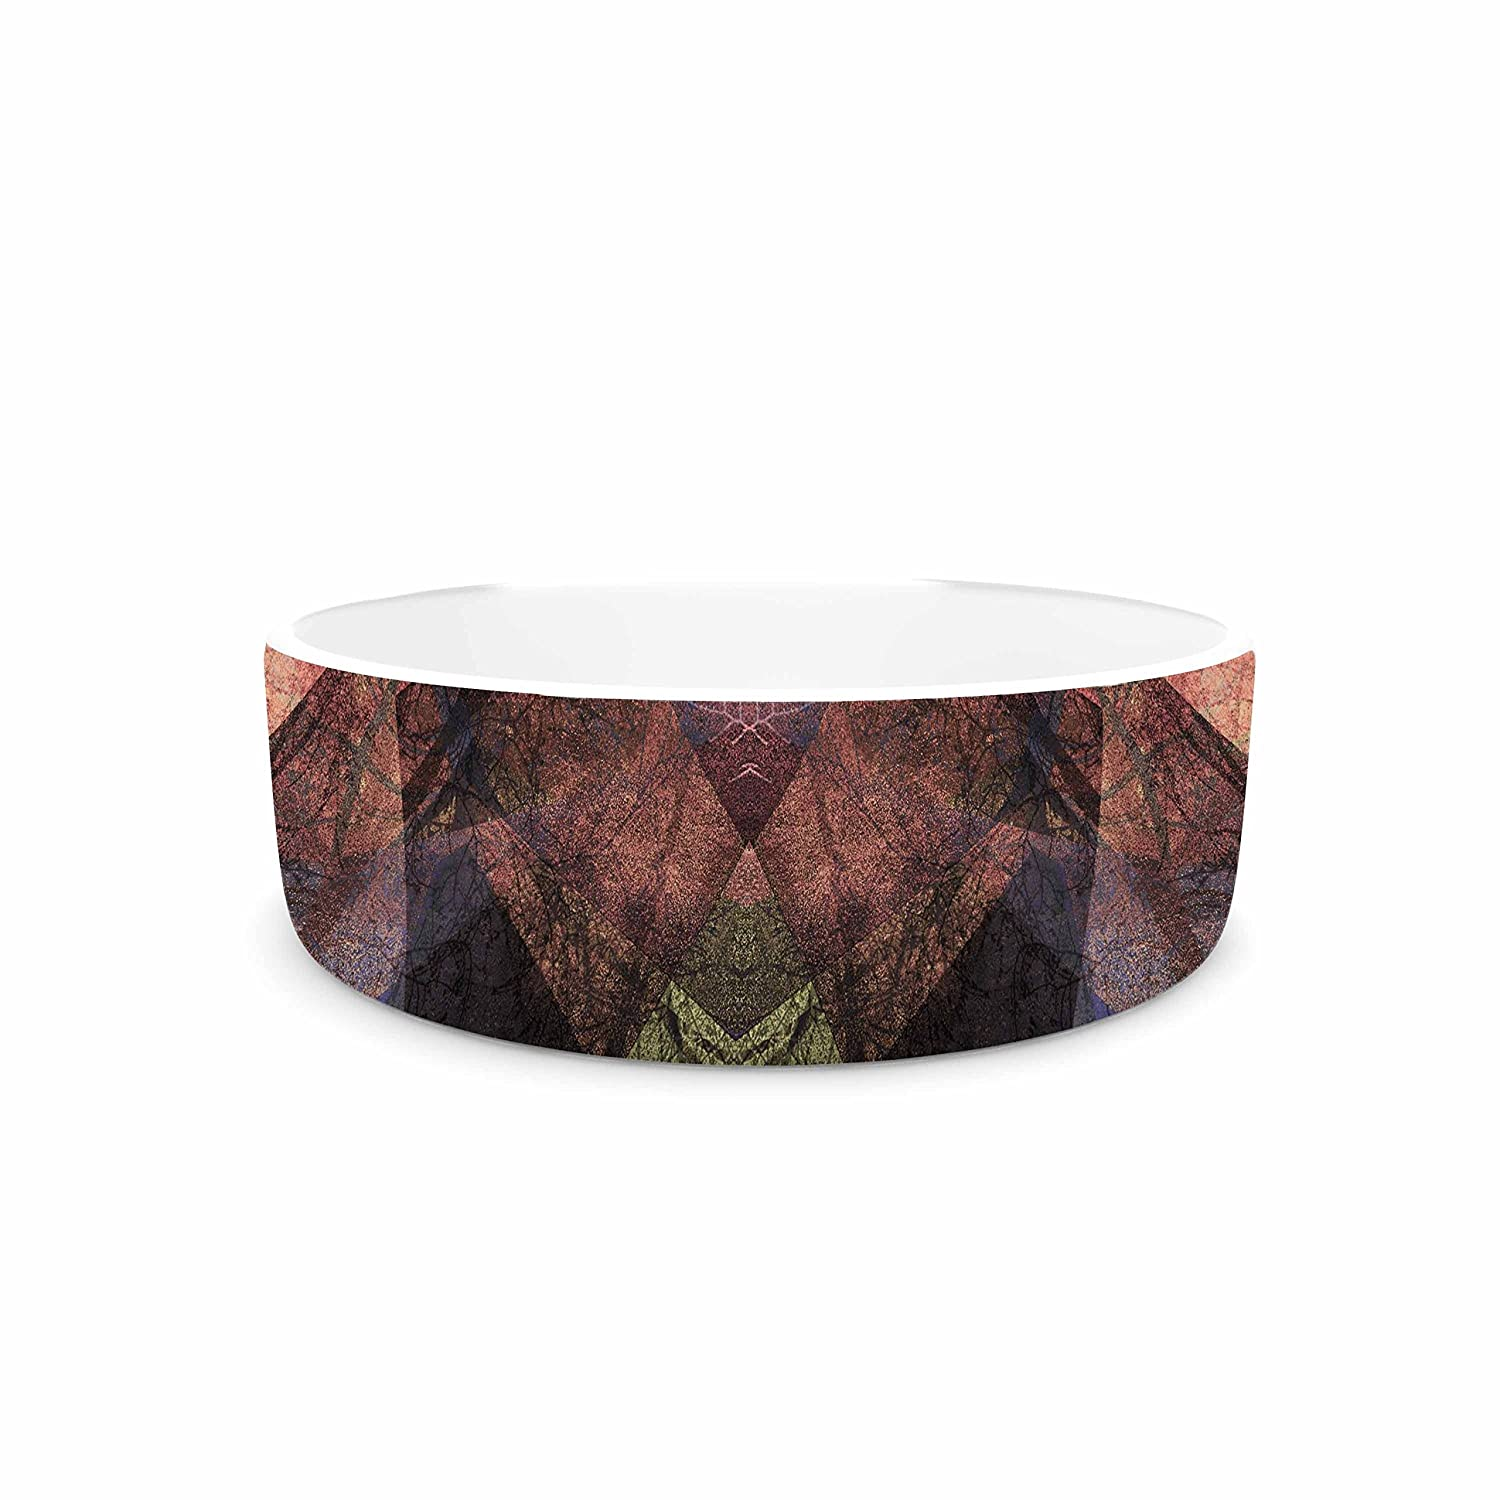 KESS InHouse Pia Schneider Pattern Garden No3 Coral Tan Geometric Pet Bowl, 4.75  Diameter